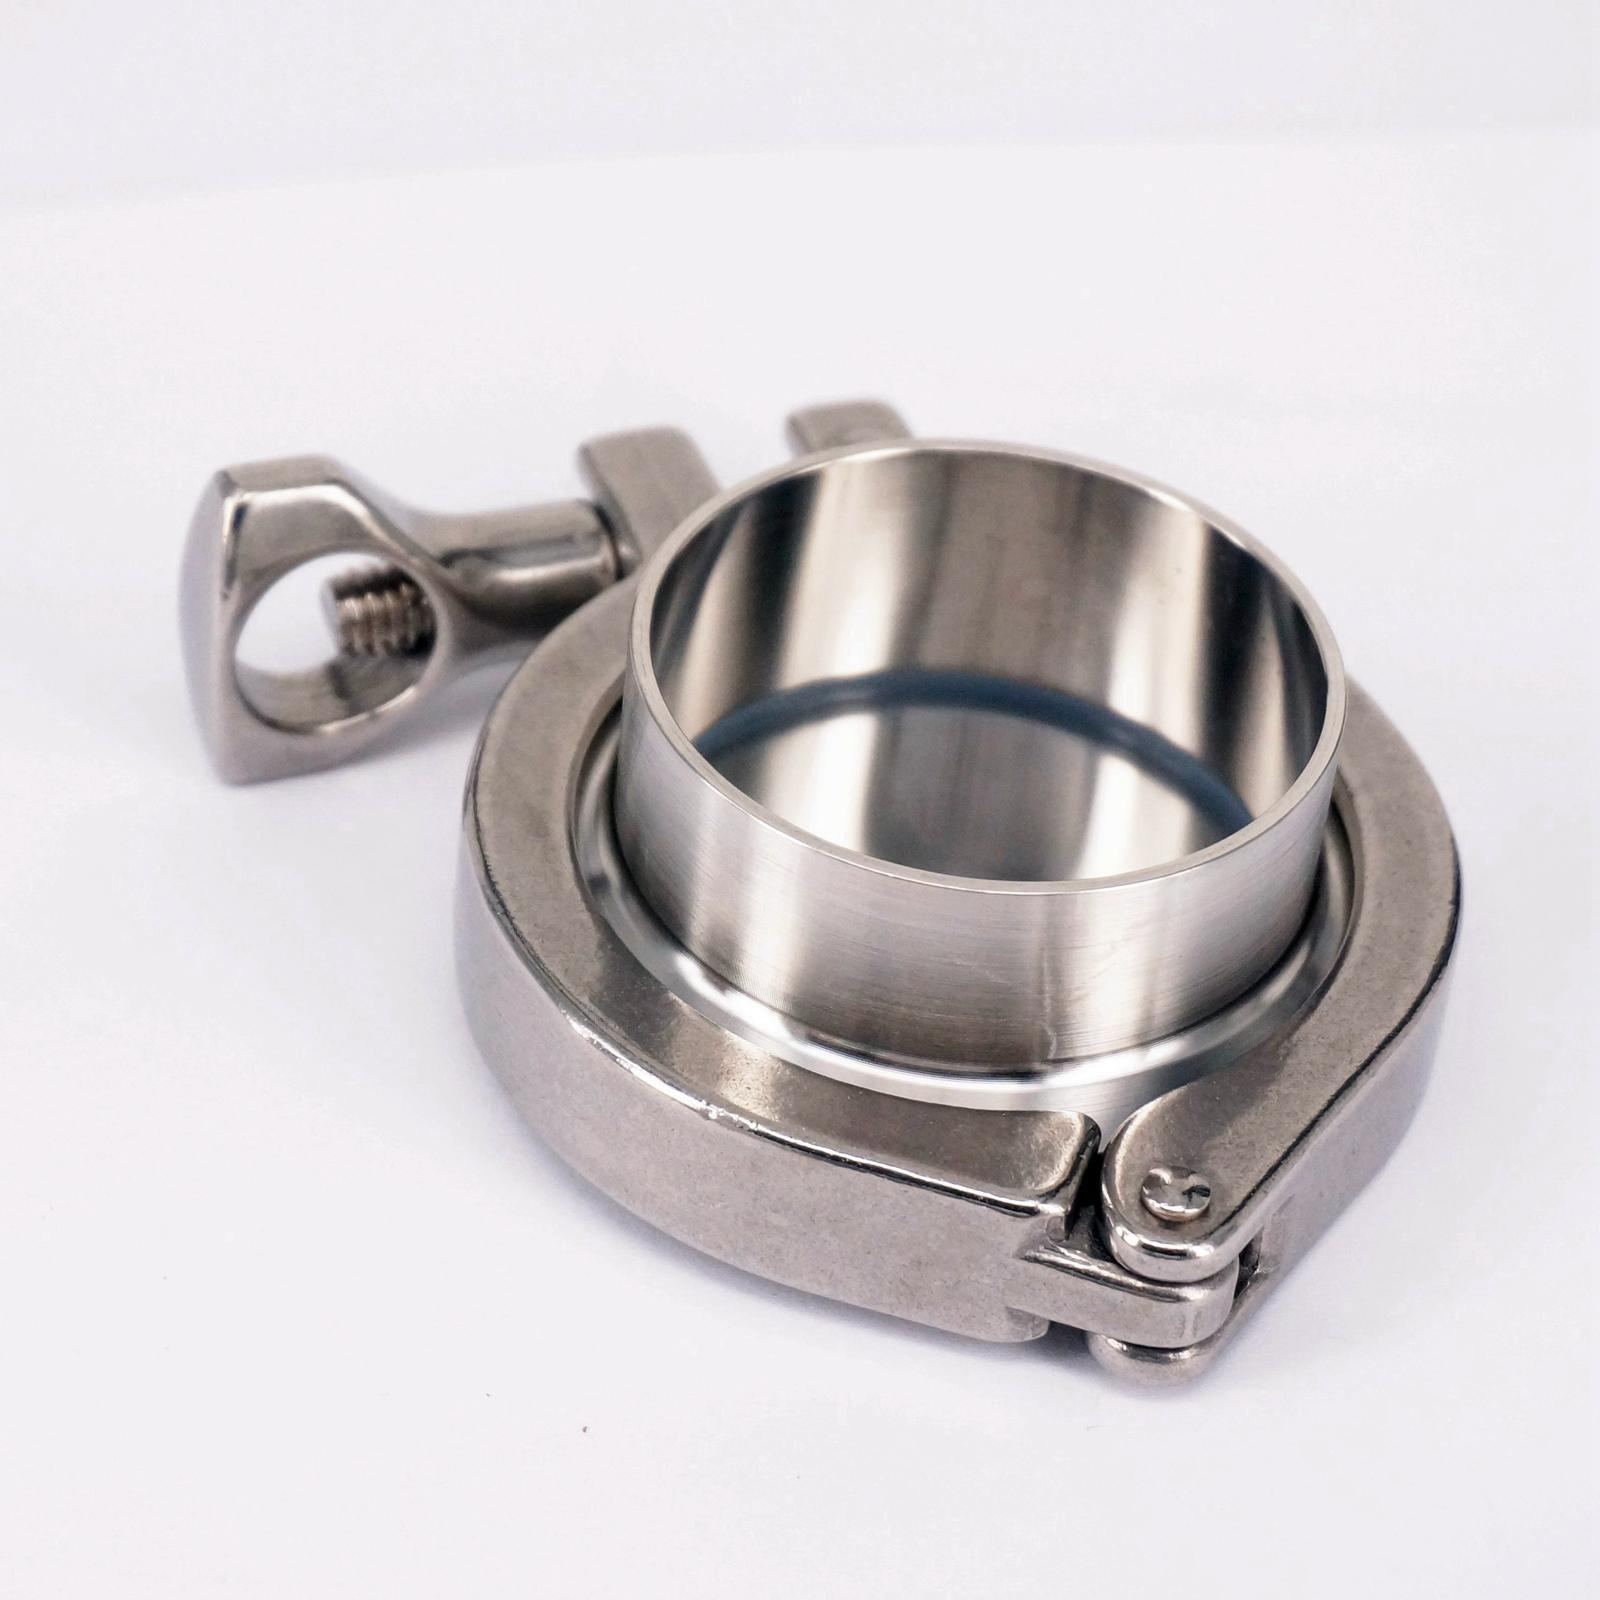 A Set 51mm 2 Sanitary Tri Clamp Weld Ferrule + Tri Clamp + Silicon Gasket + End Cap 304 Stainless steel free shipping 6 154mm sanitary tri clamp weld ferrule tri clamp silicon gasket union set 304 stainless steel for homebrew